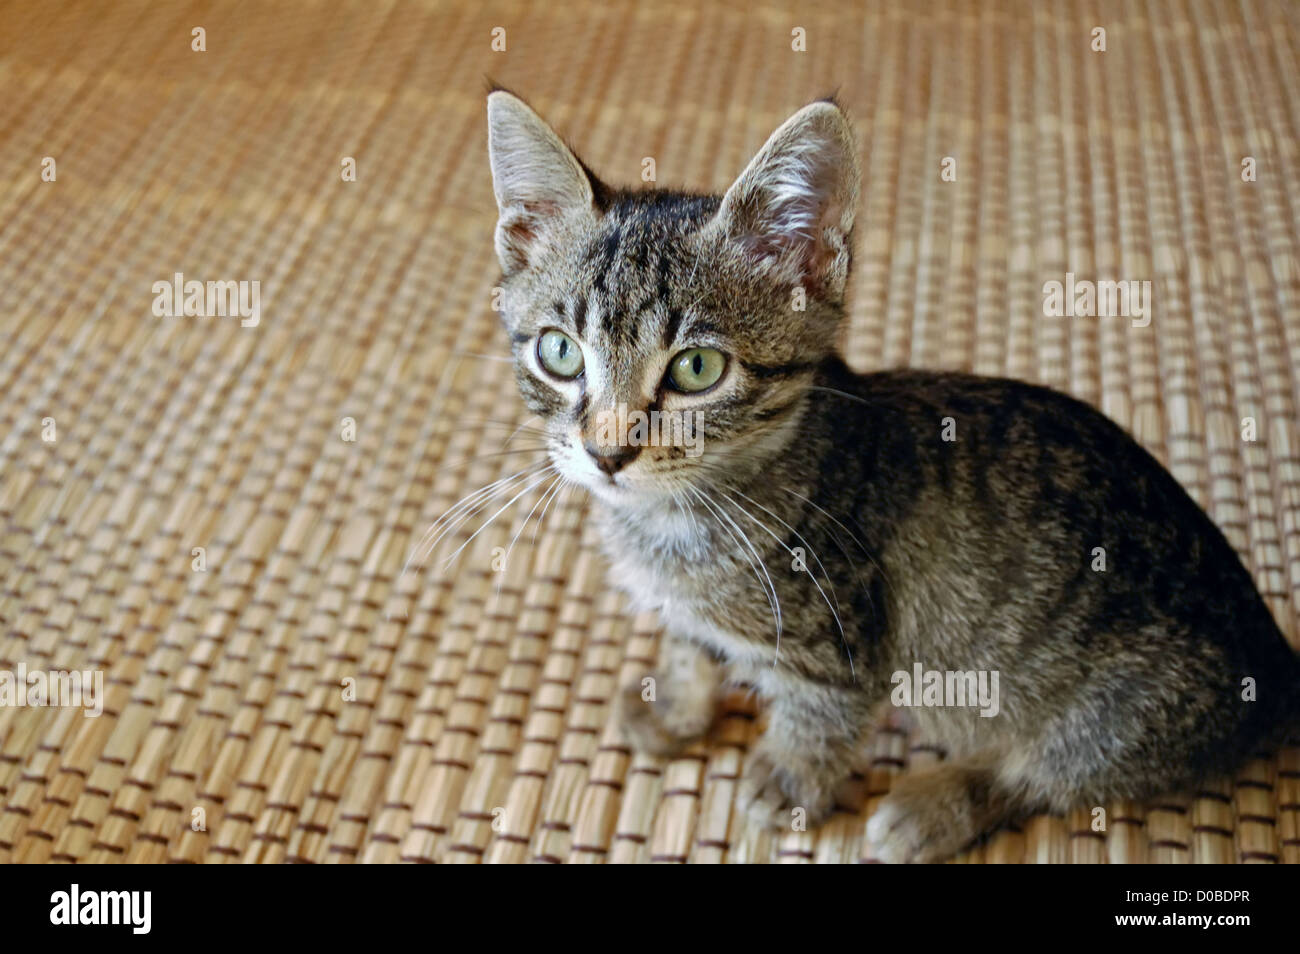 cute gray baby kitten with green eyes domestic animal